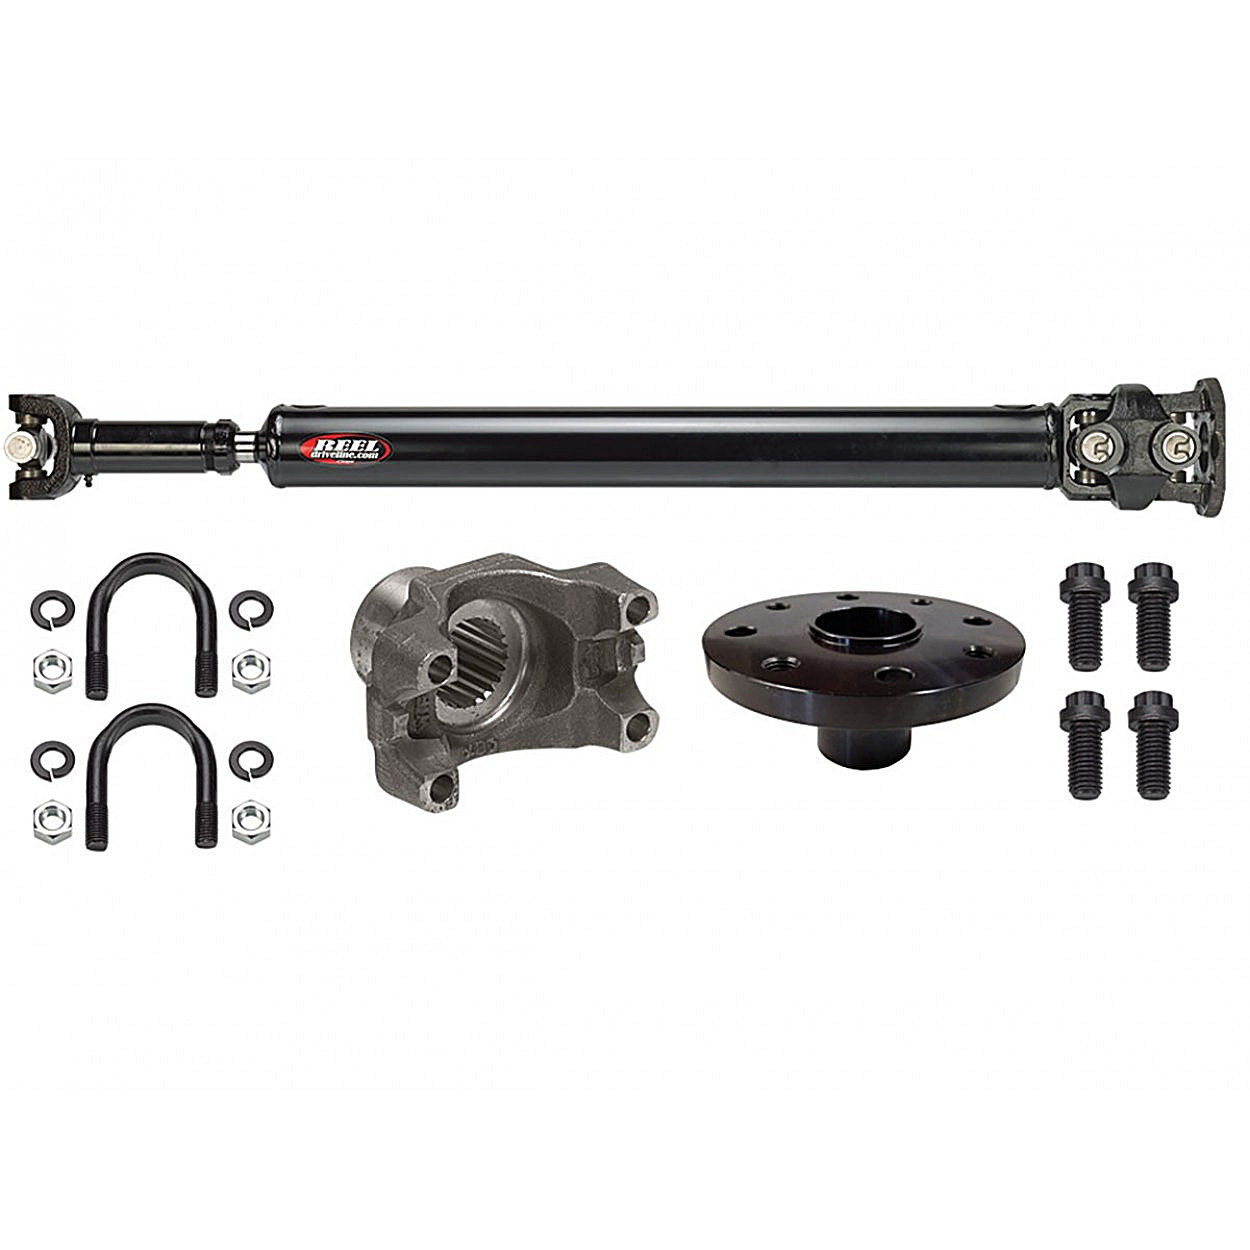 J E Reel 35jk 2r Bfgd Heavy Duty Rear Driveshaft For